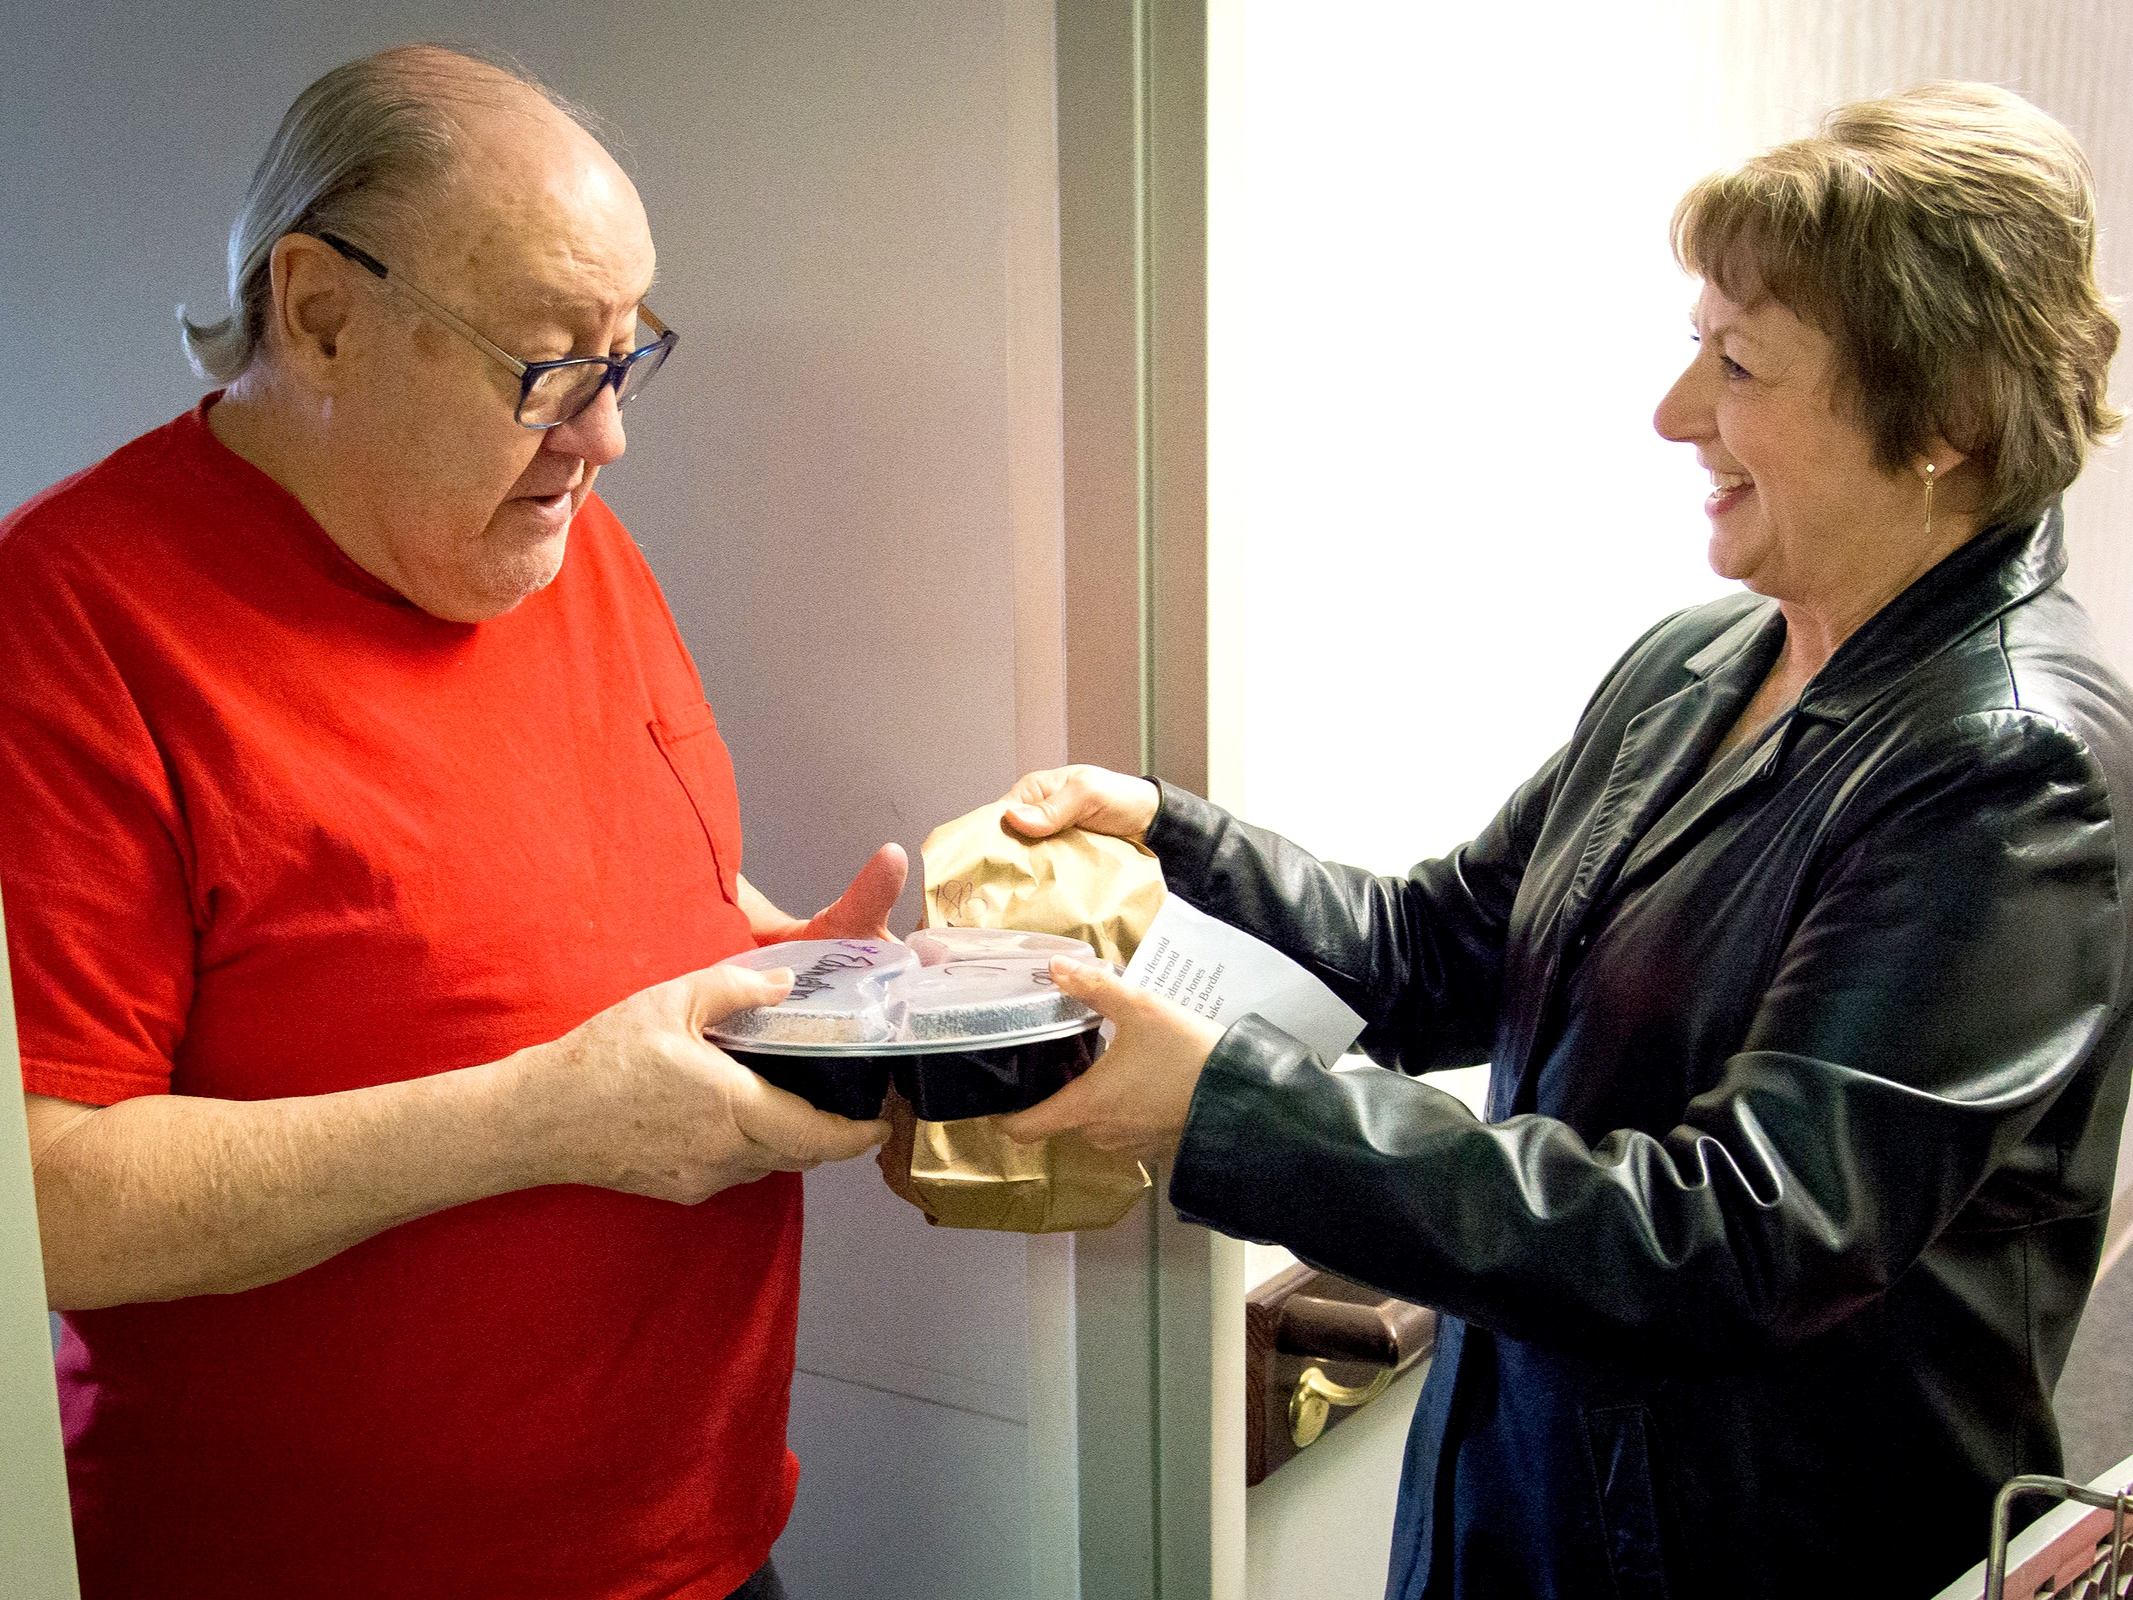 Meals On Wheels   - Selinsgrove Area  : Selinsgrove Area Meals on Wheels is a non-profit organization formed with the goal of delivering hot, nutritious meals five days a week to persons living in the Selinsgrove Area School District who are unable or find it difficult, for a variety of reasons, to prepare meals for themselves.